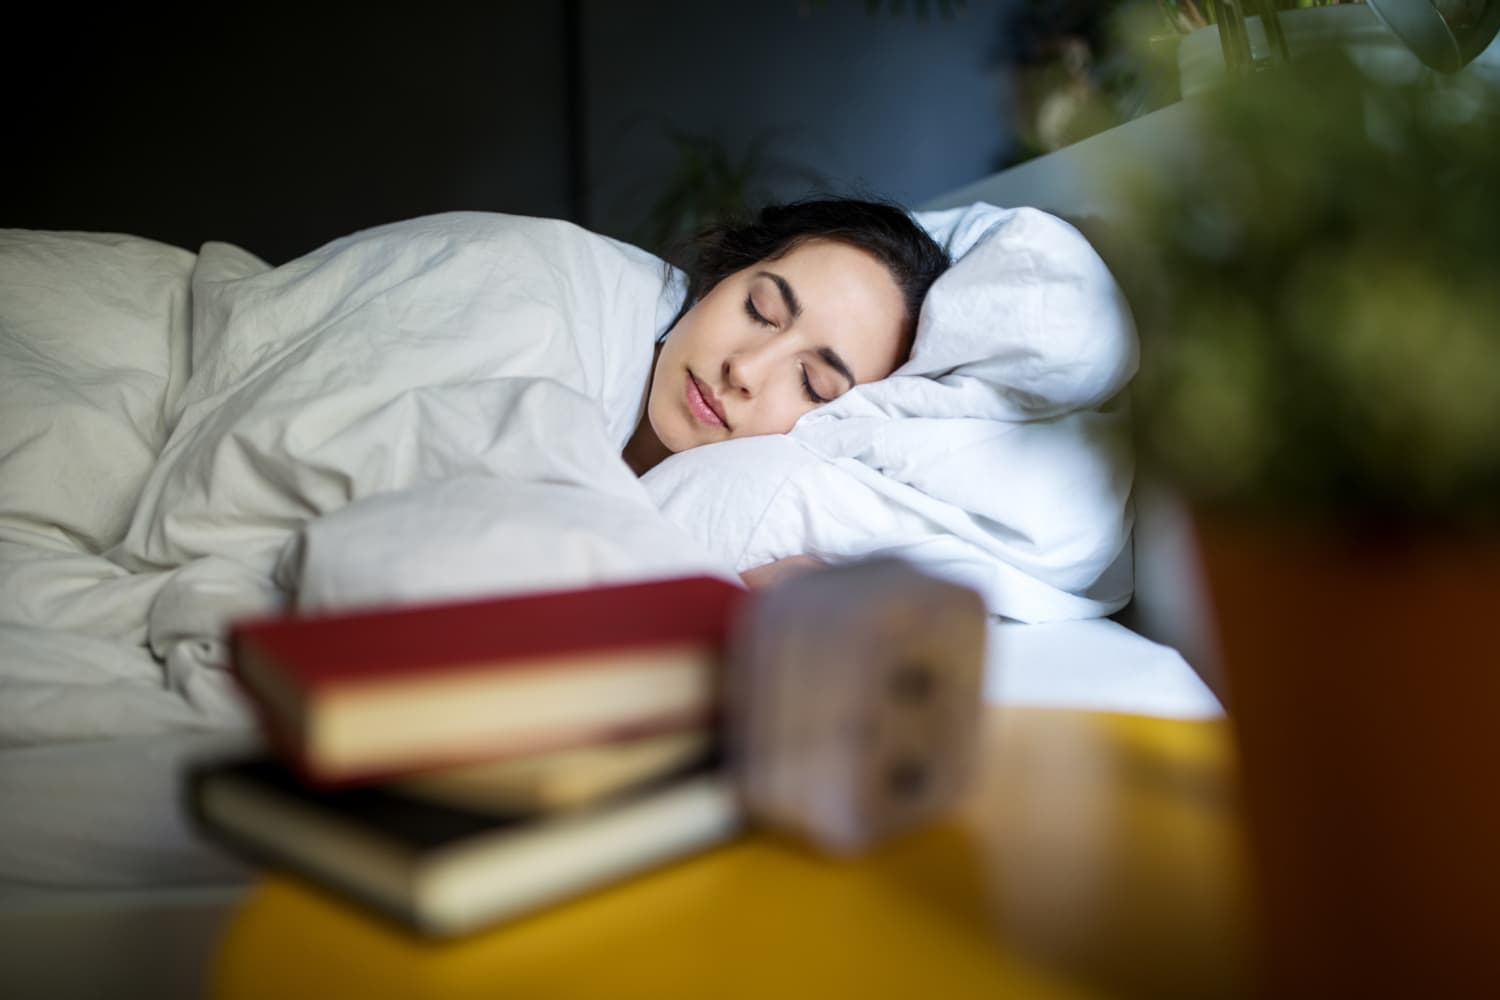 8 Genius Sleep Ideas That Mental Health Pros Give Their Most Anxious Patients